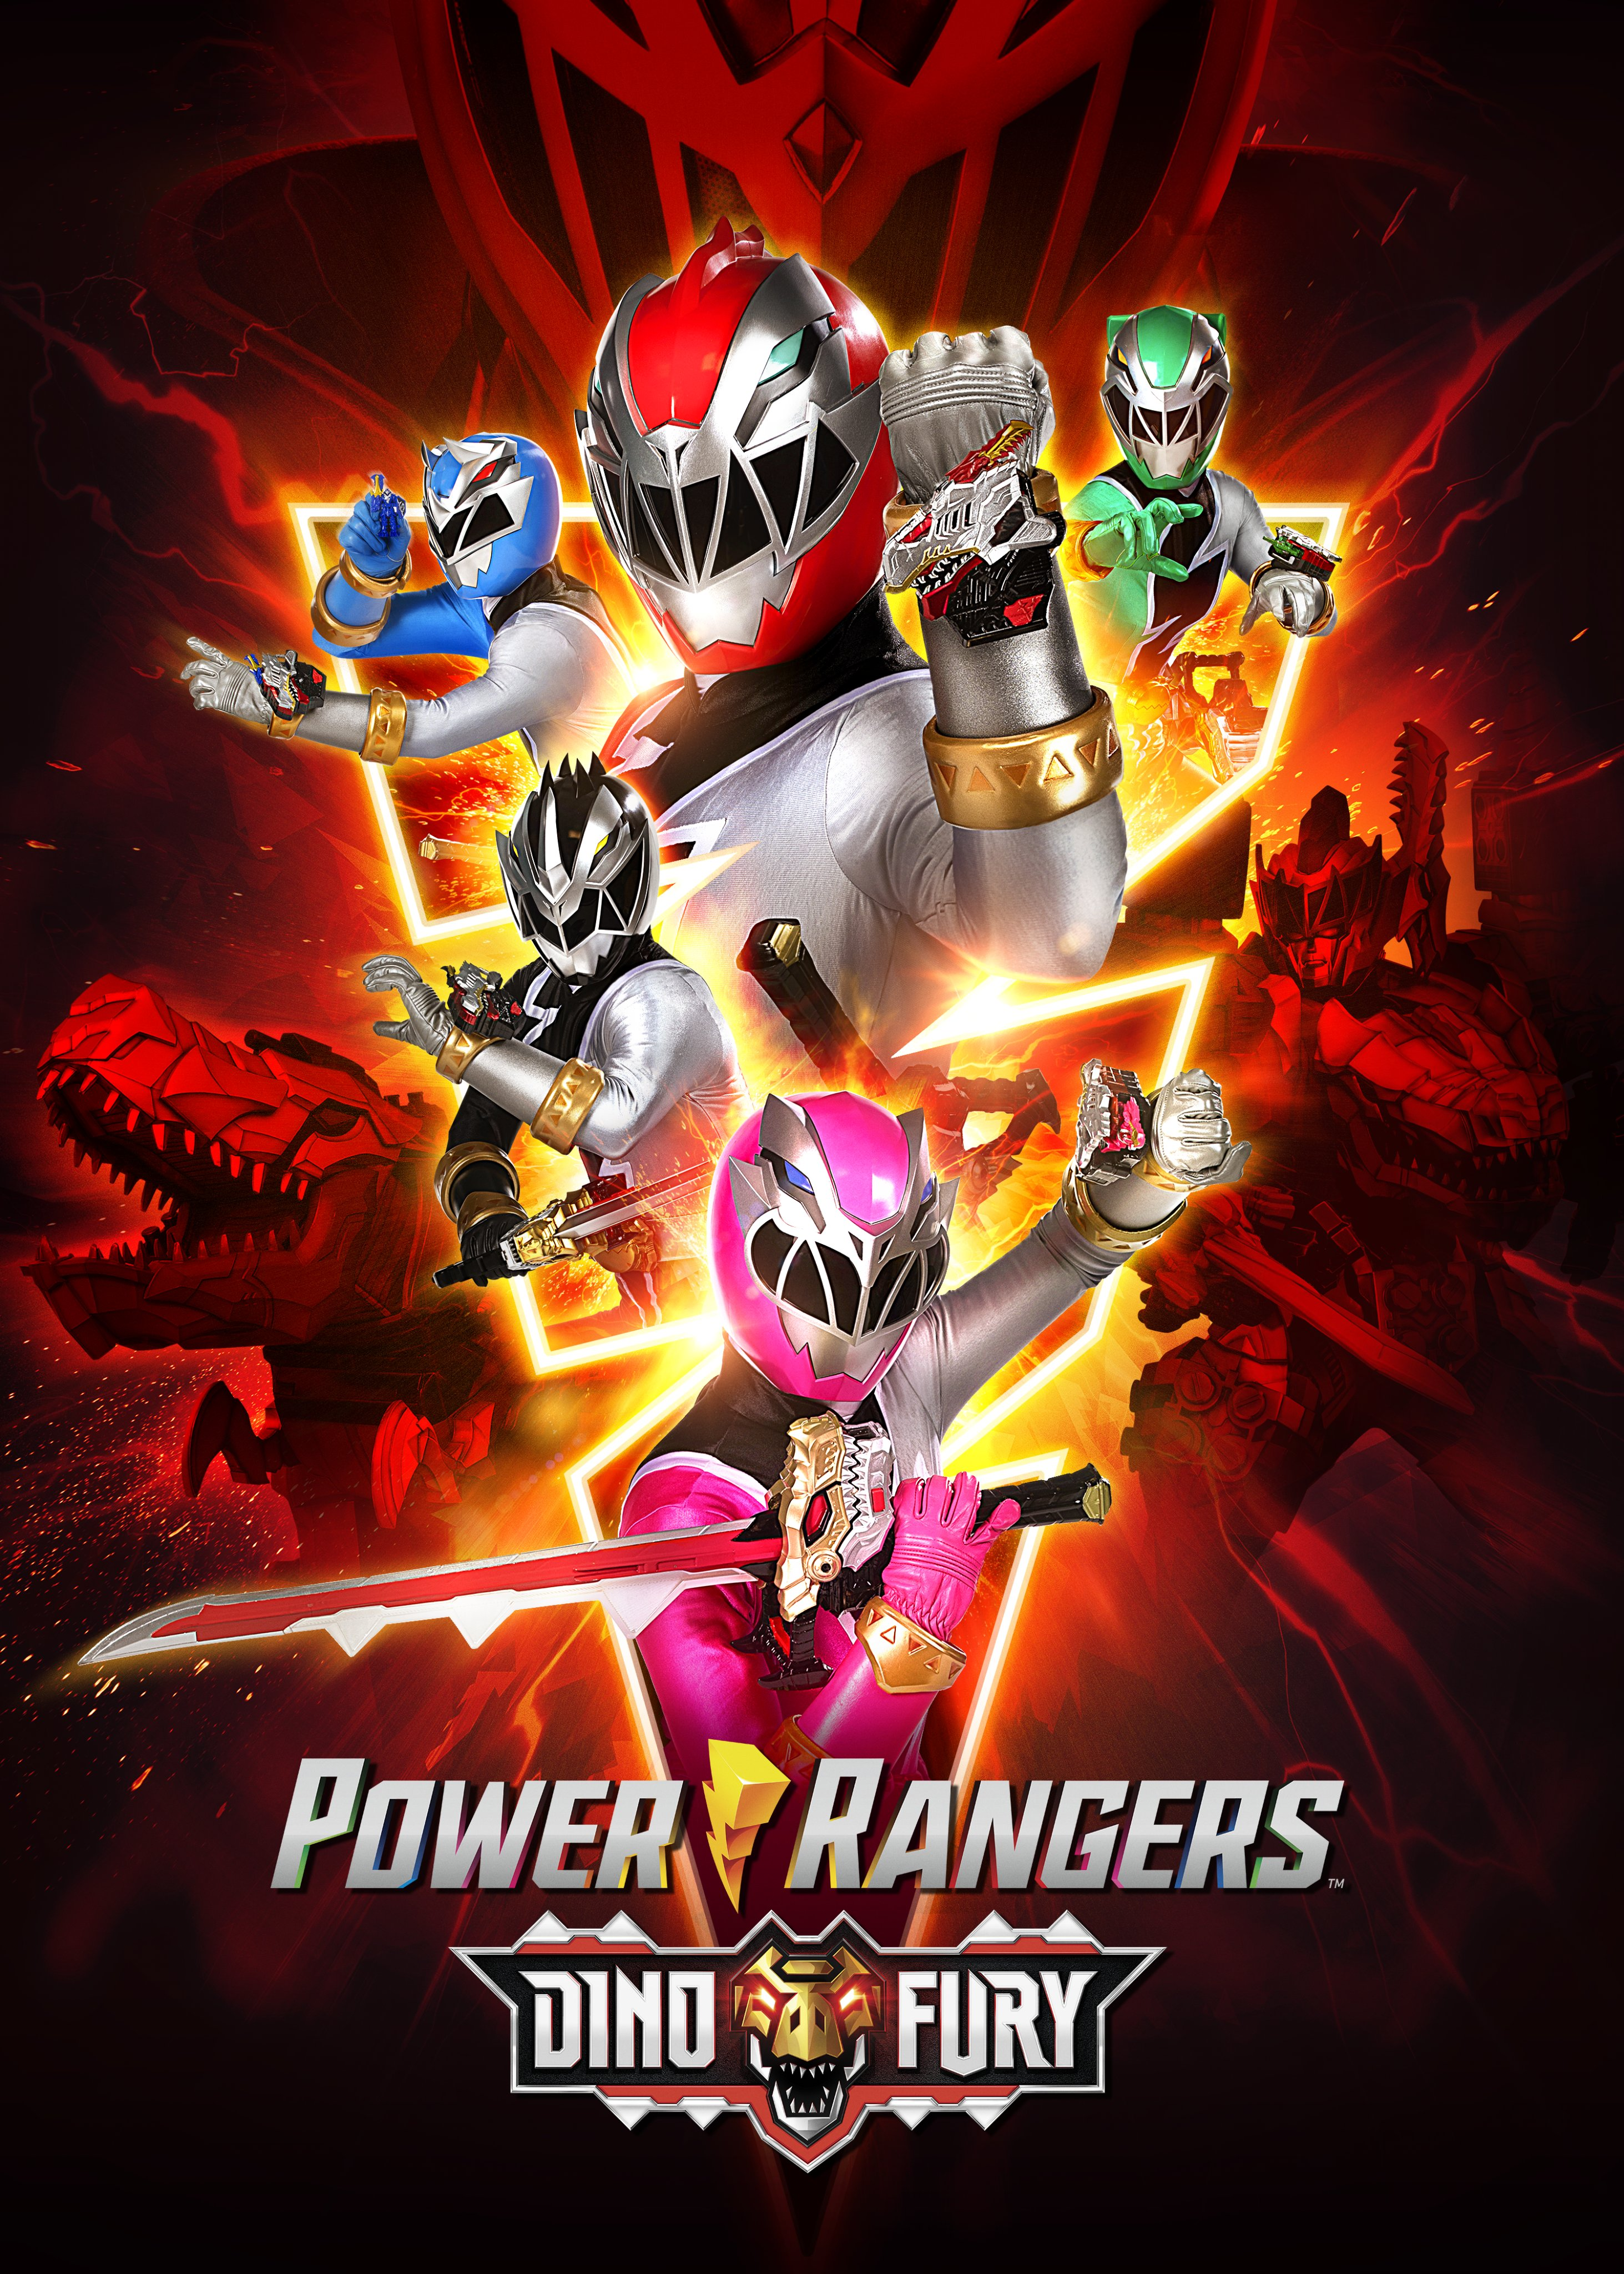 Power Rangers Fan First Friday Recap: Lightning Collection Wave 9, Dino Fury Theme & More!